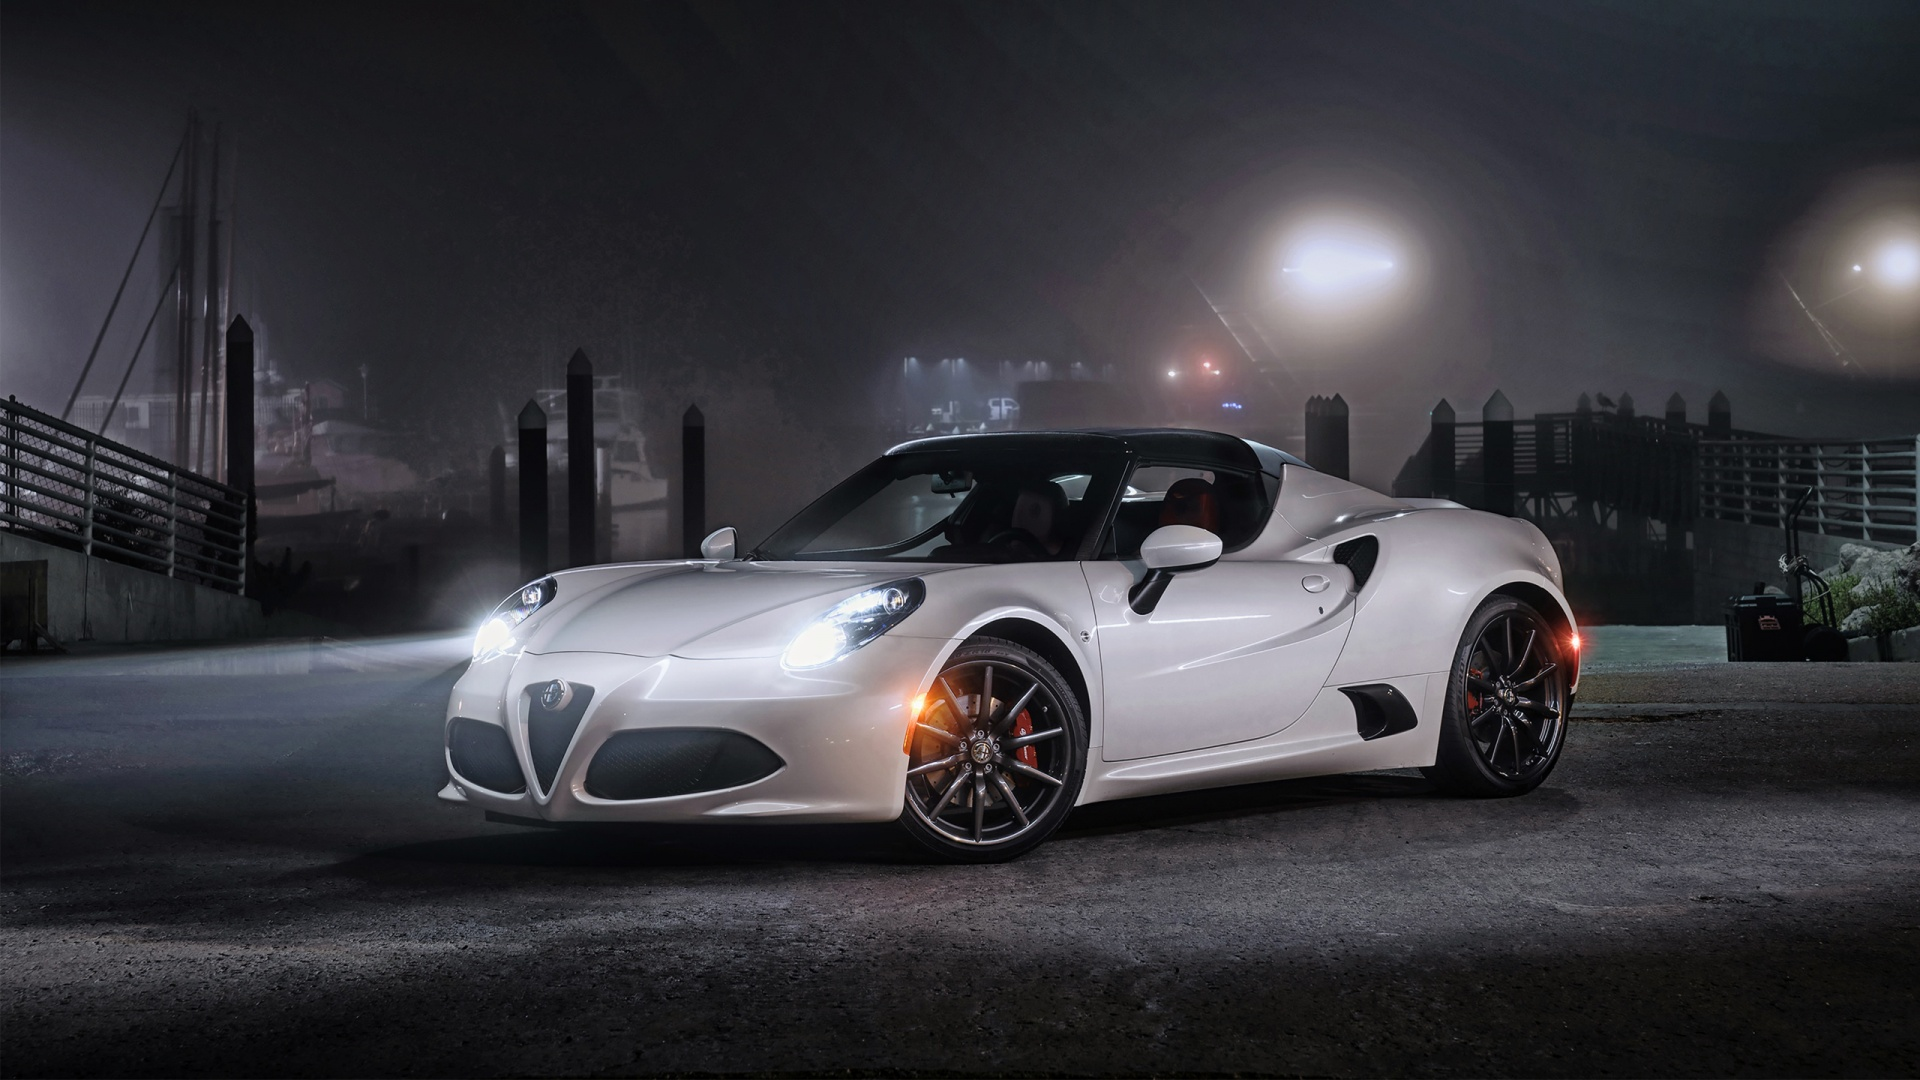 06 additionally File Alfa Romeo 4C argento moreover Watch together with 2016 Alfa Romeo 4C Spider Grey 3 1920x1200 further Alfa 4C Indoor Car Cover  6890. on alfa romeo 4c white